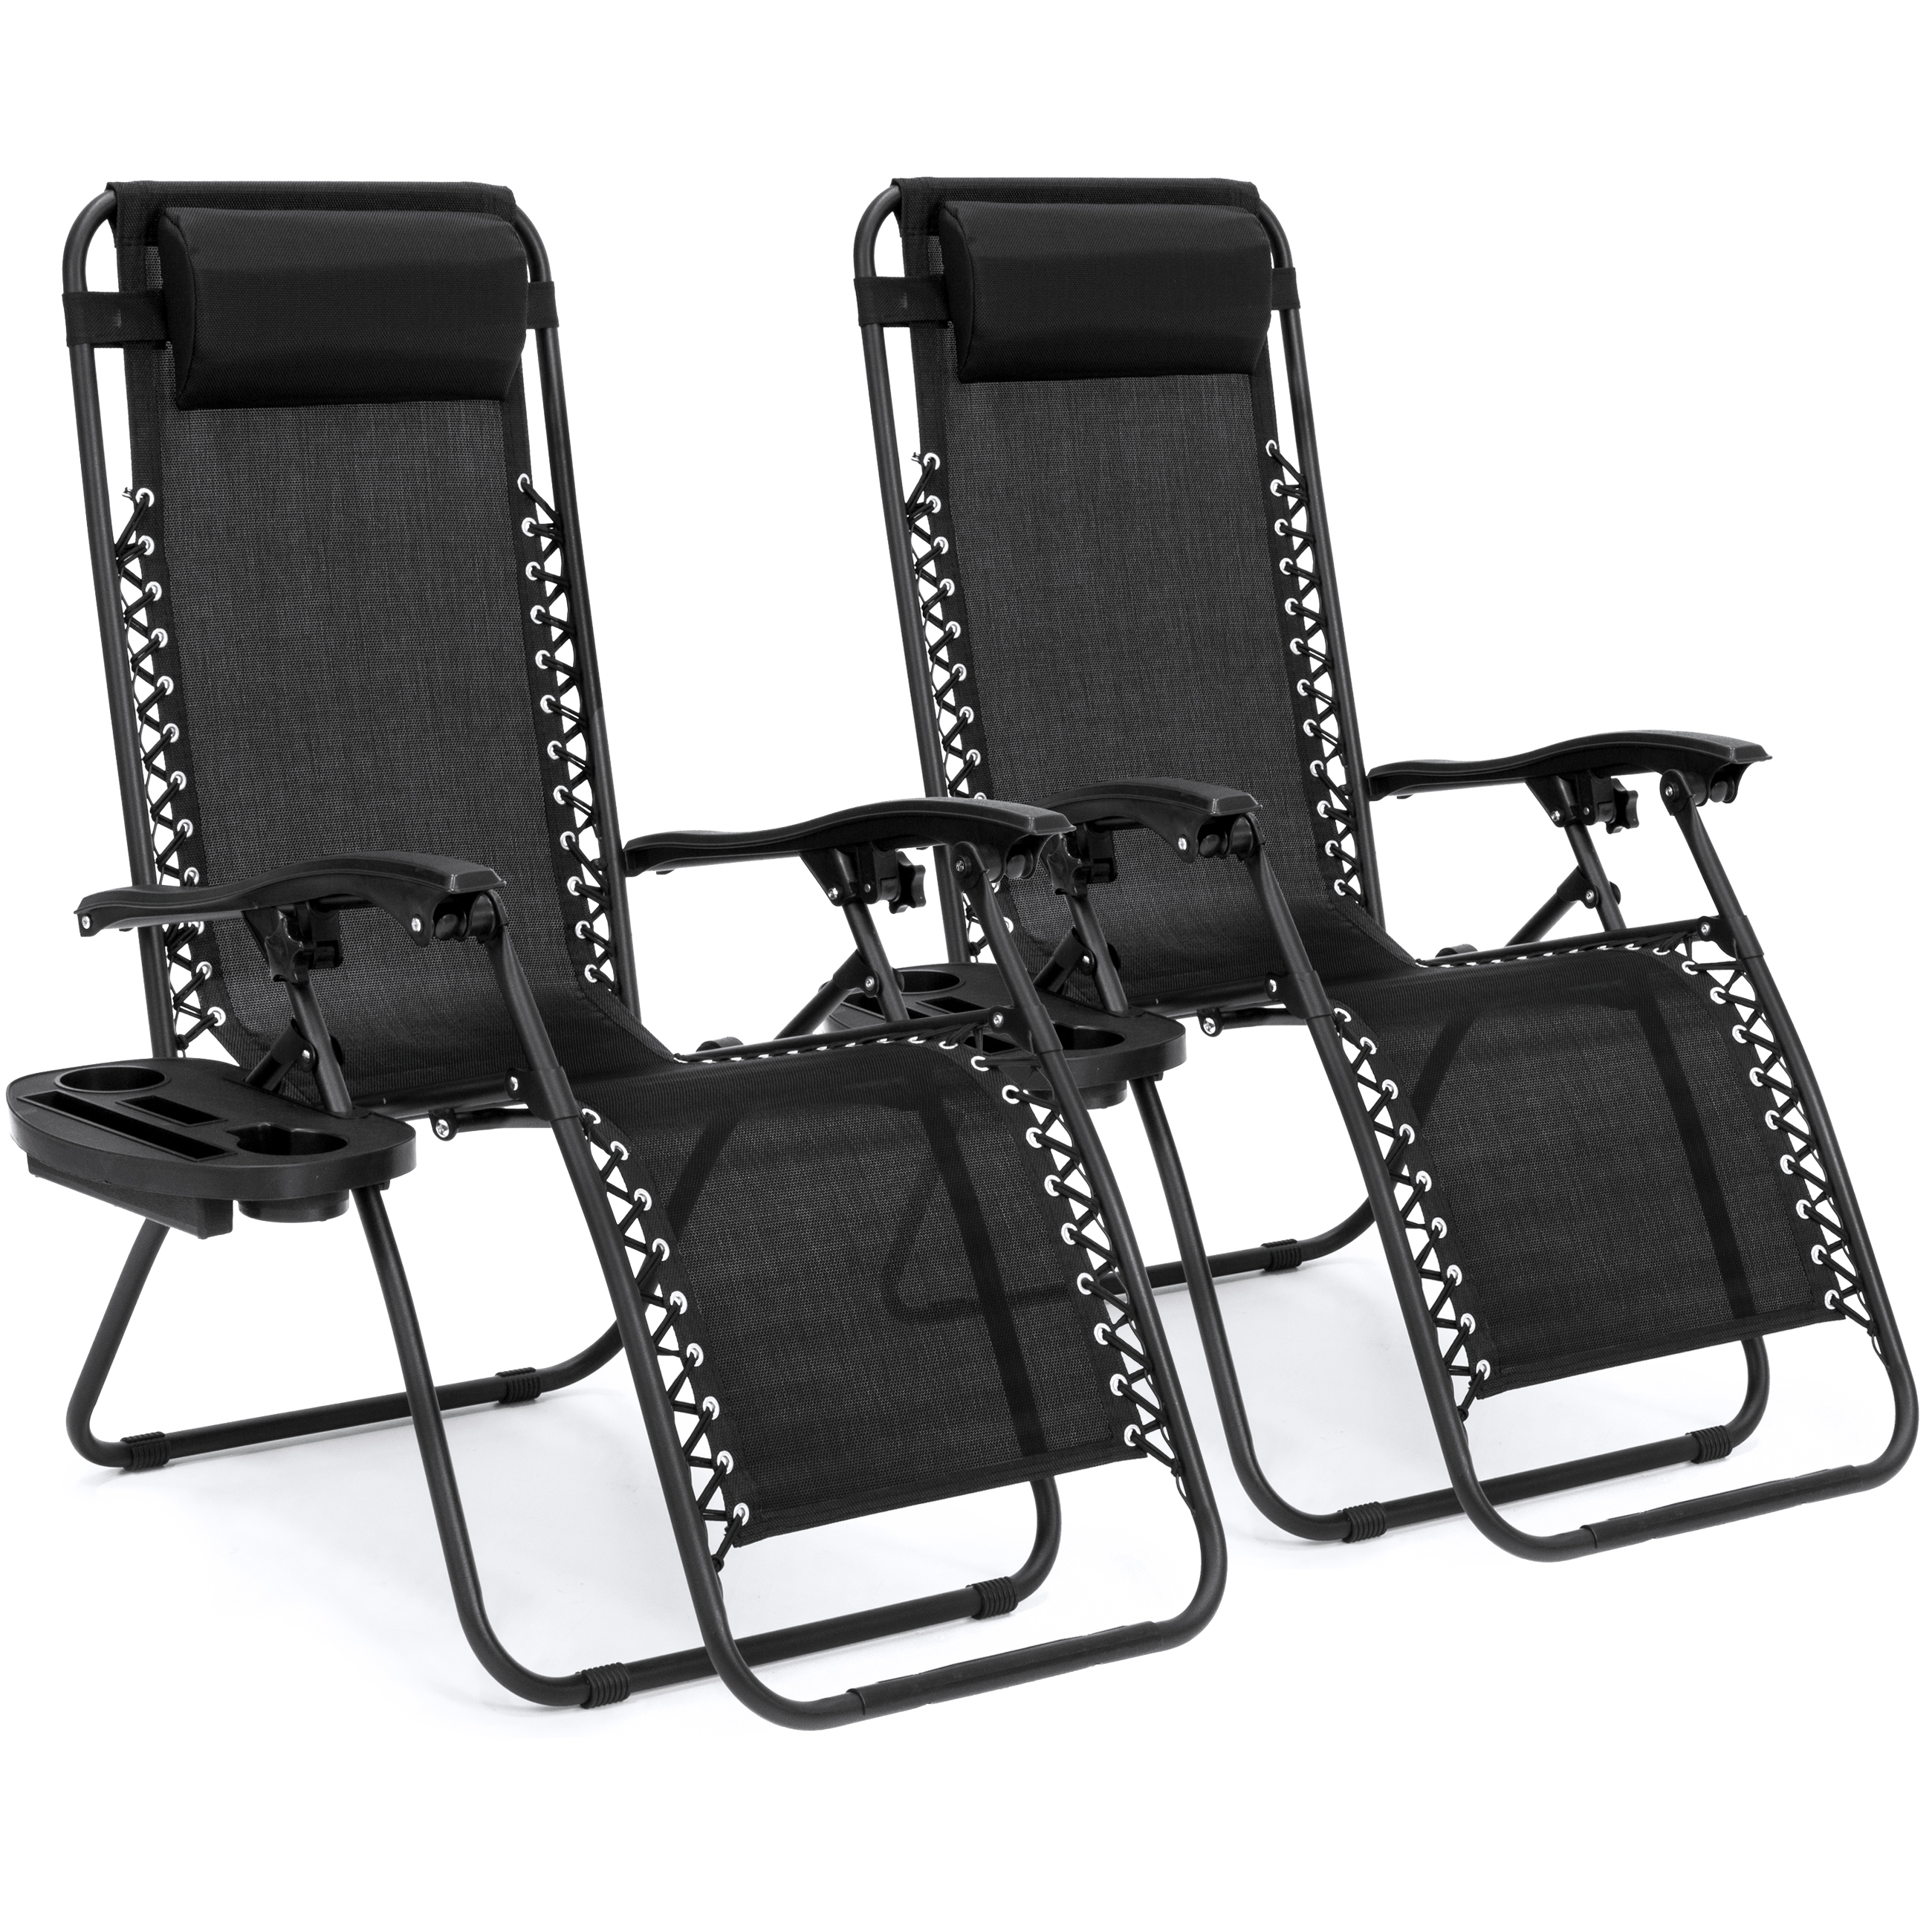 Zero Gravity Chairs Case 2 Black Lounge Patio Chairs Utility